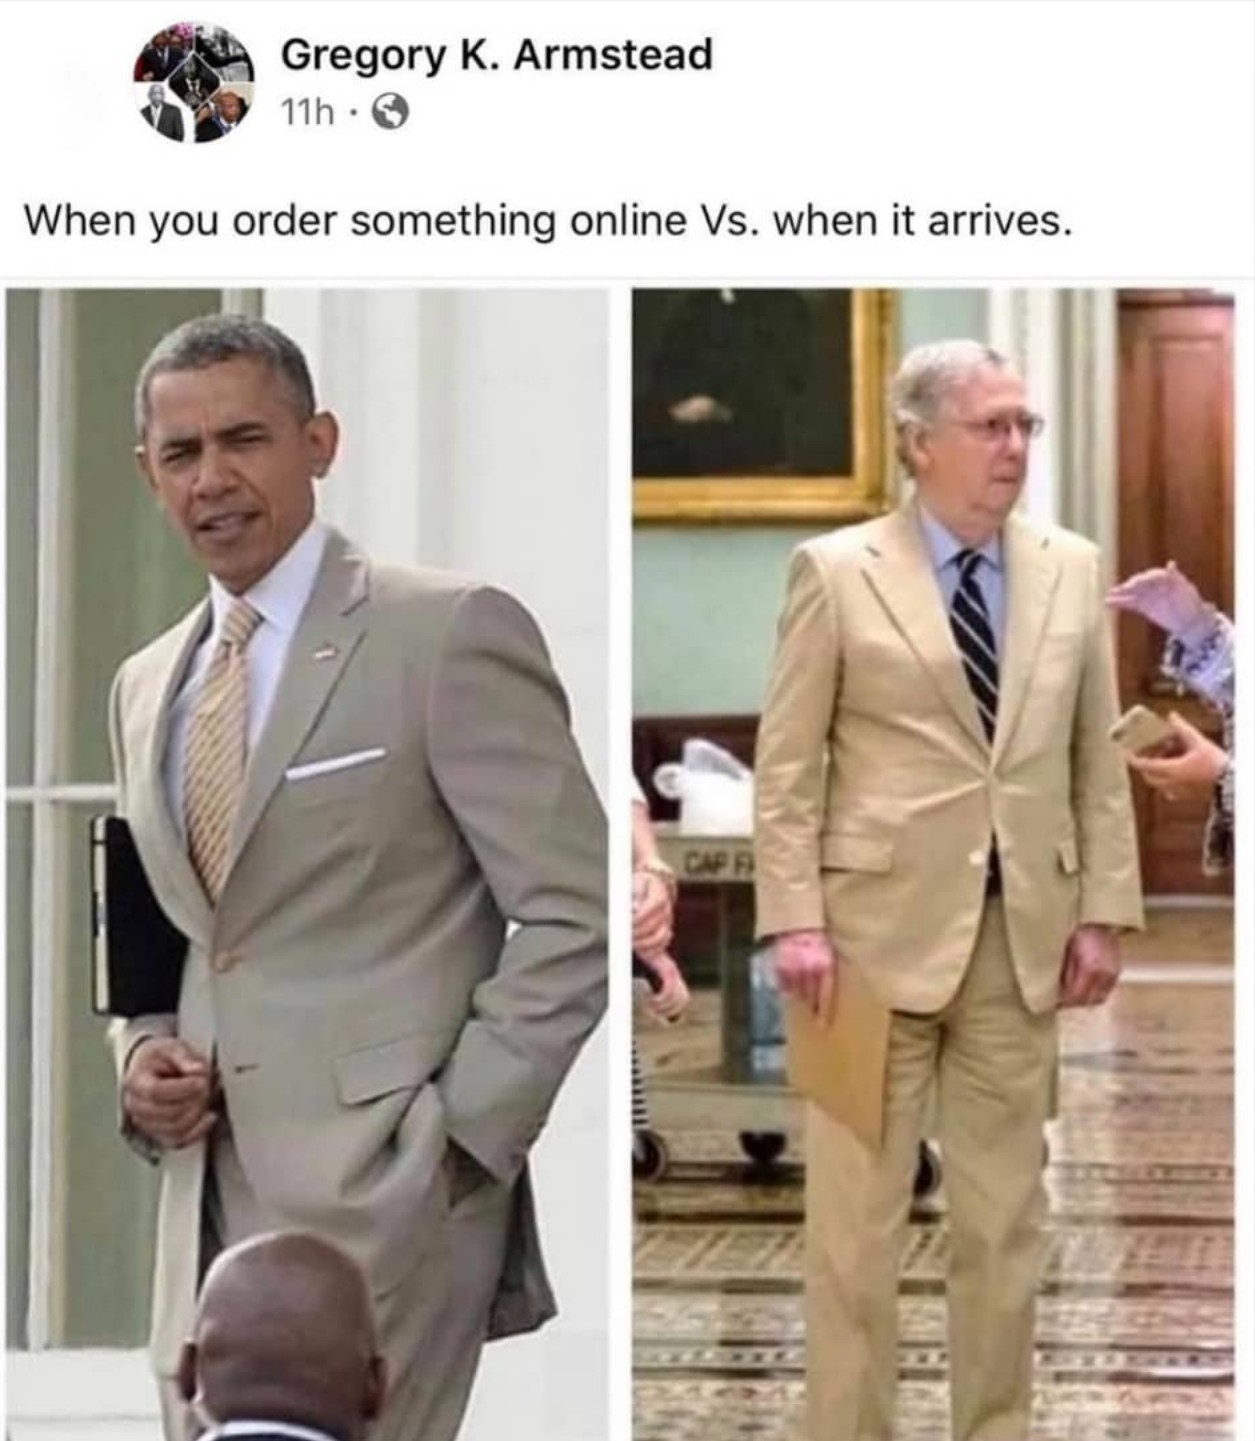 Take a Breath Memedroid it's Just a Joke... but Tan Really is an Awful Color for a Suit